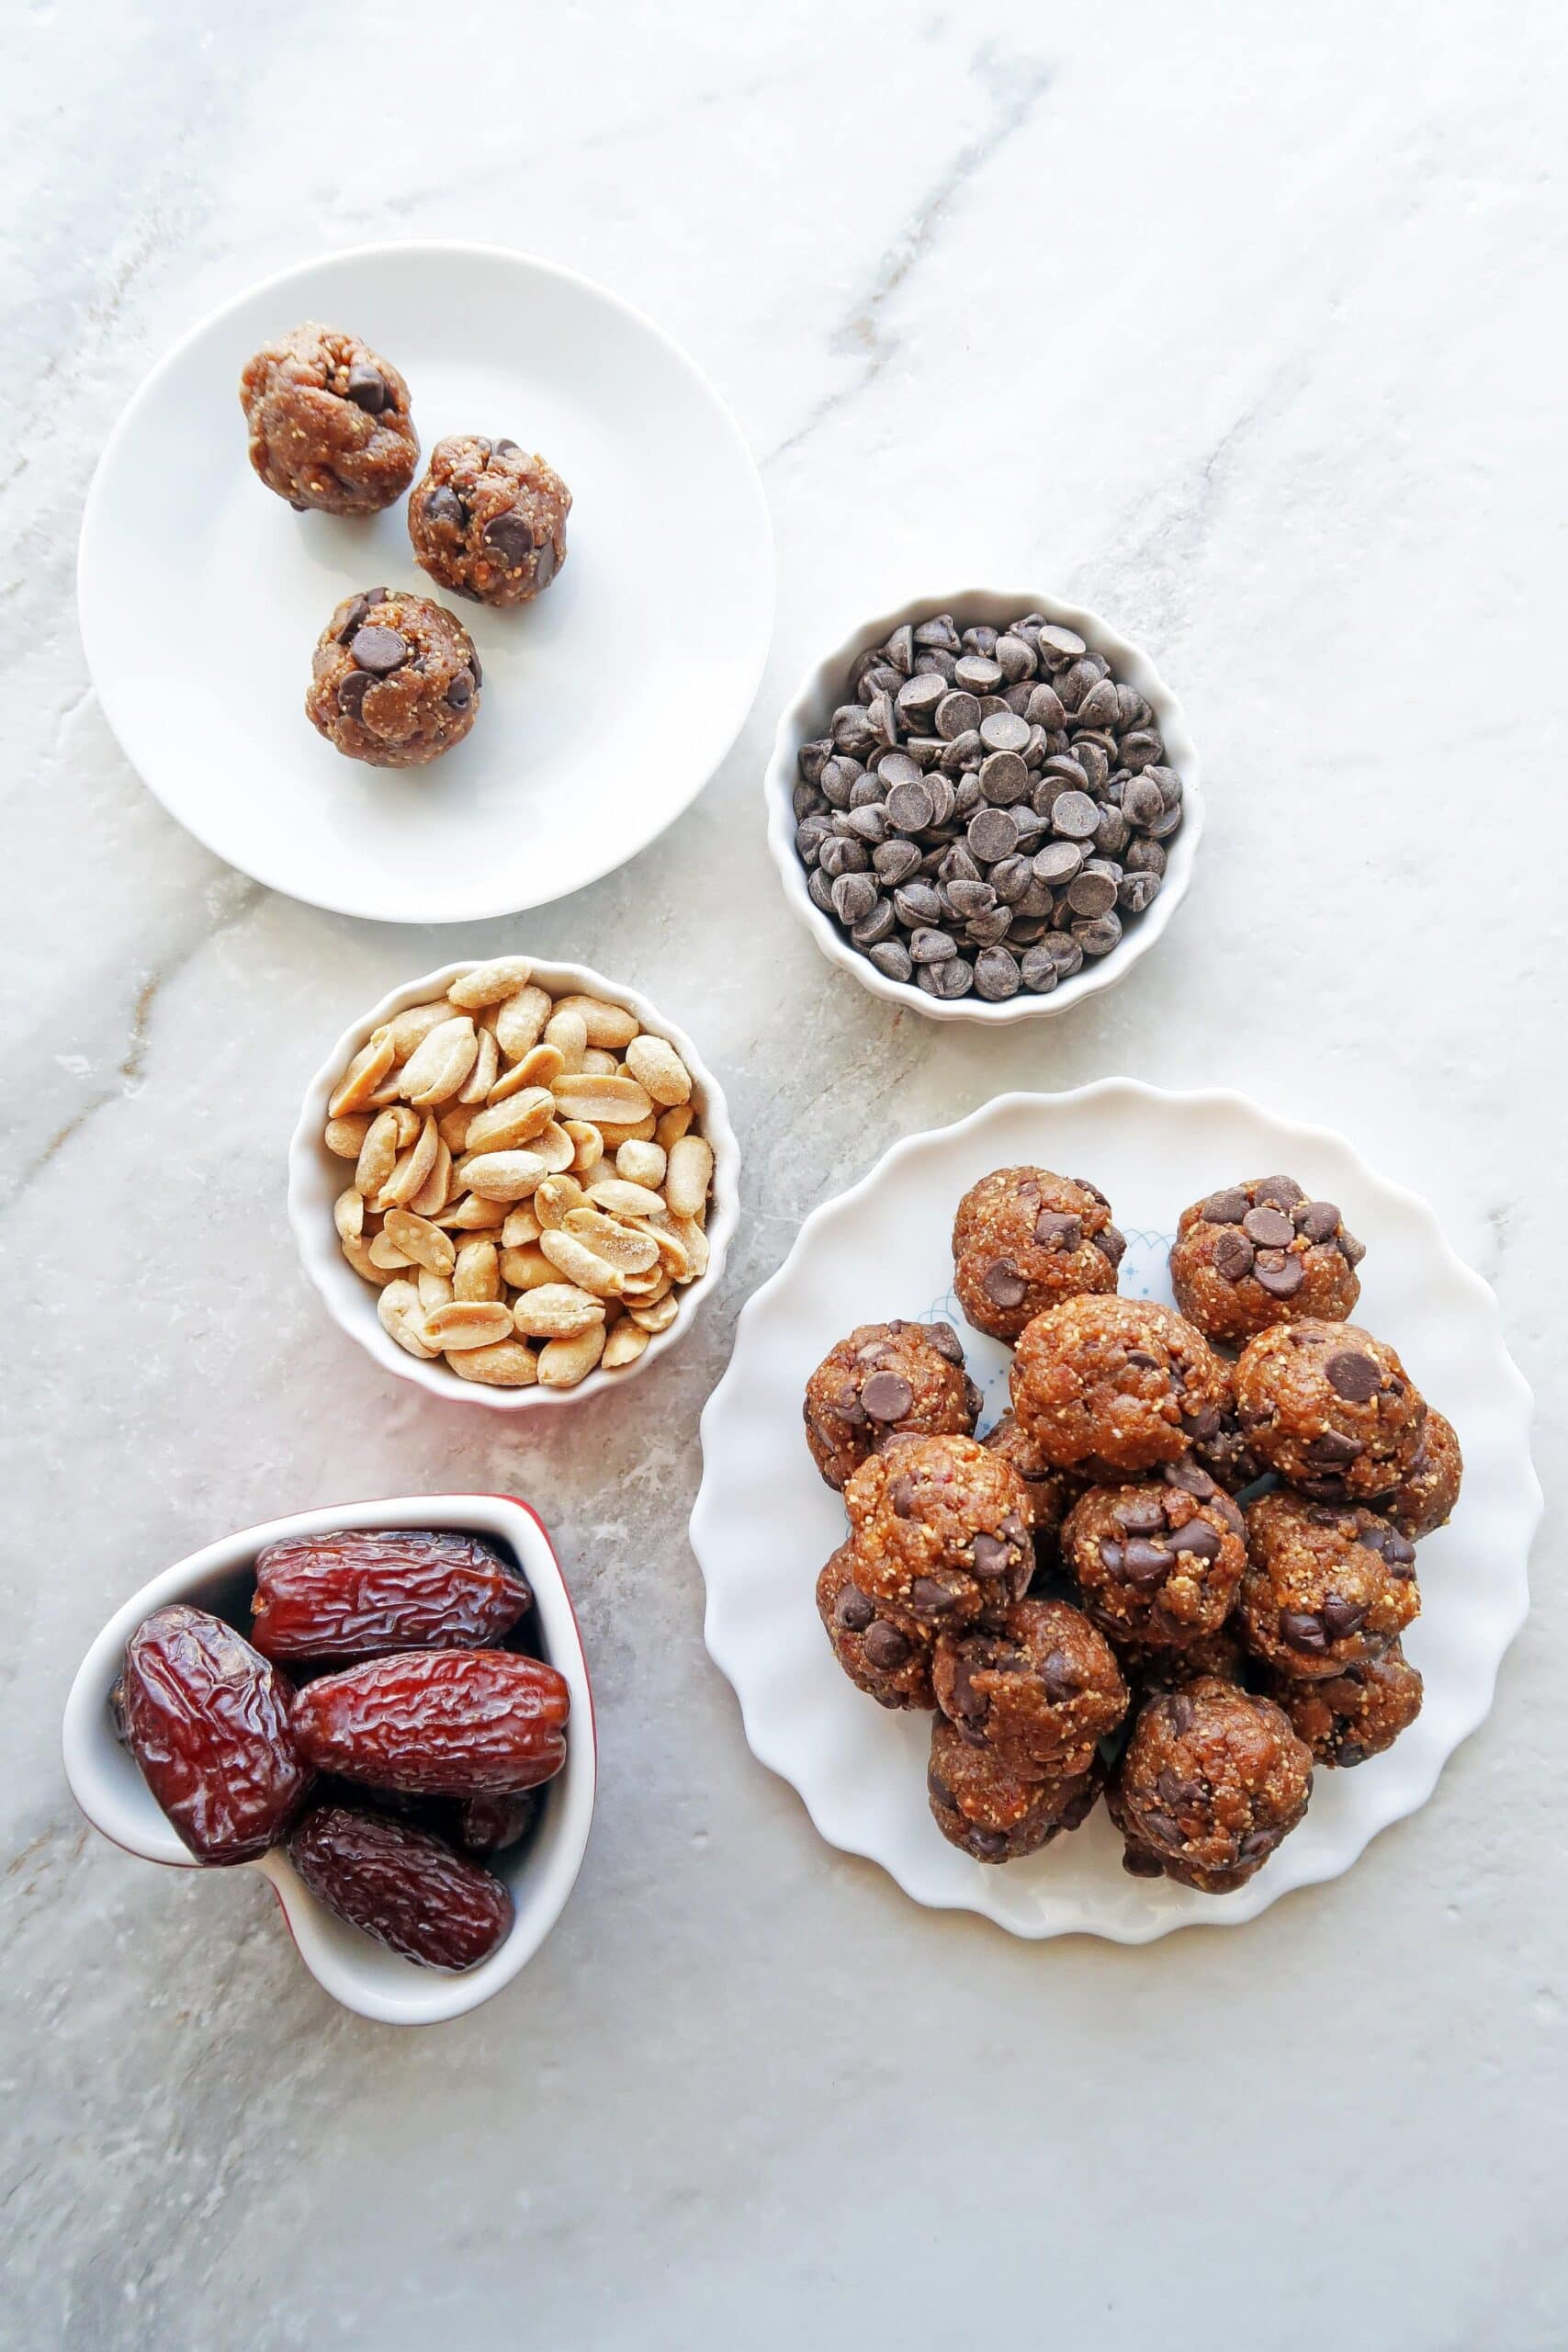 4-Ingredient Peanut Chocolate Chip Energy Balls